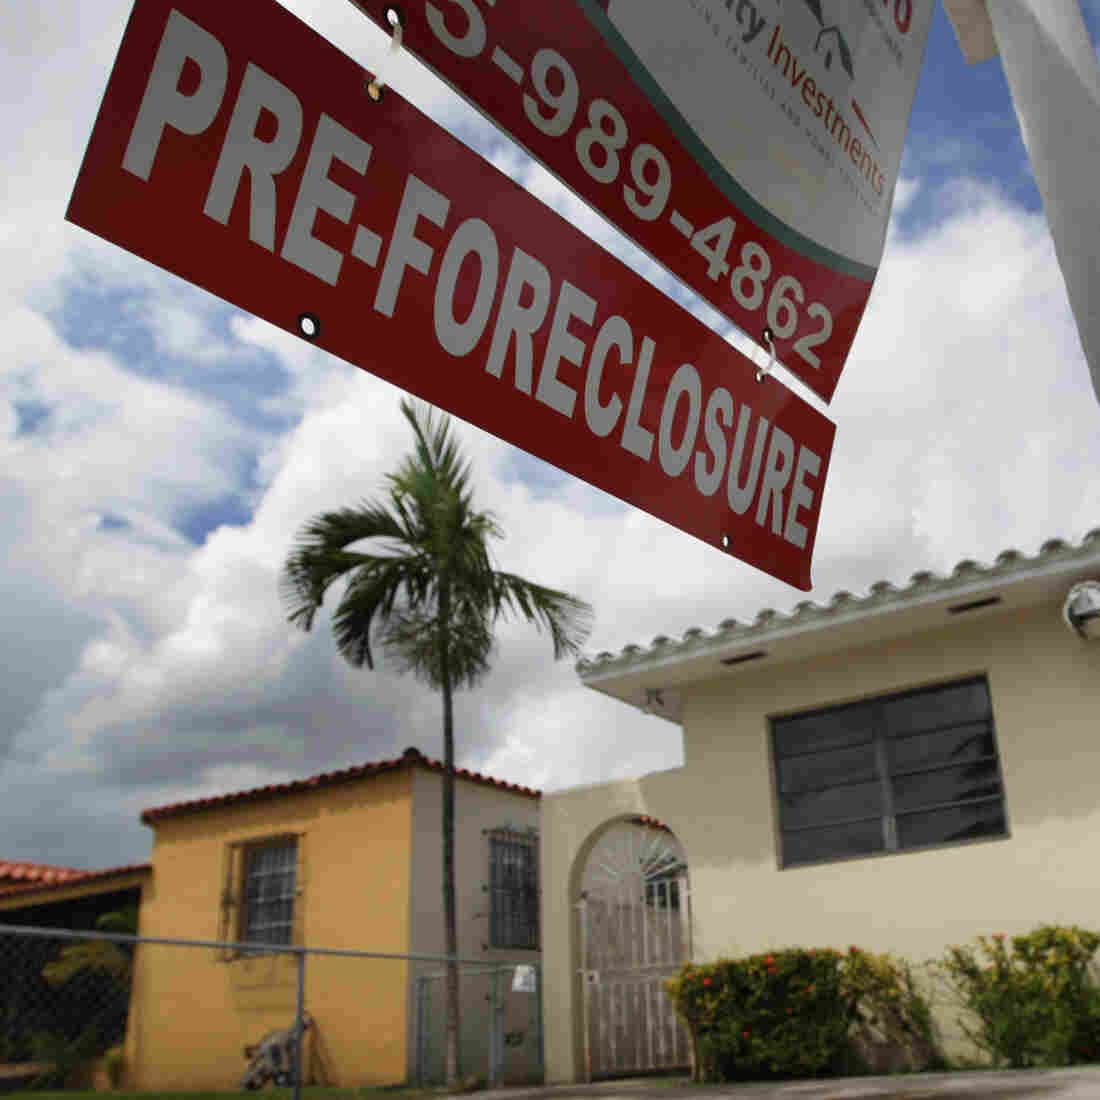 Foreclosure Process Hammers Florida's Housing Market